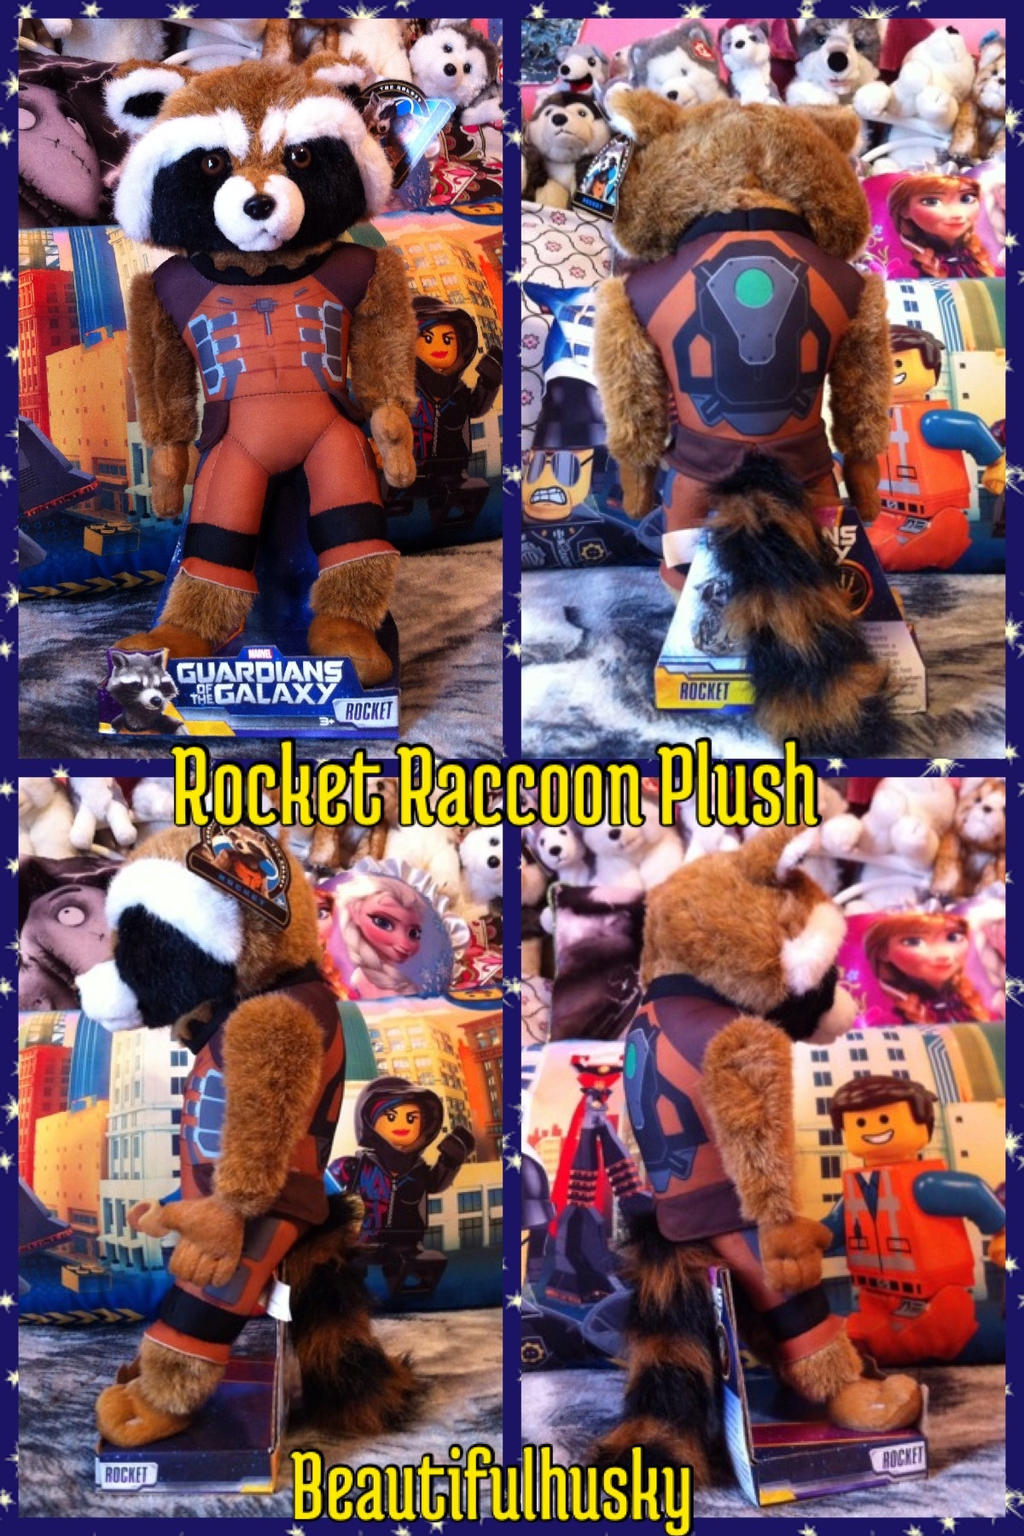 Disney Store Rocket Raccoon Plush